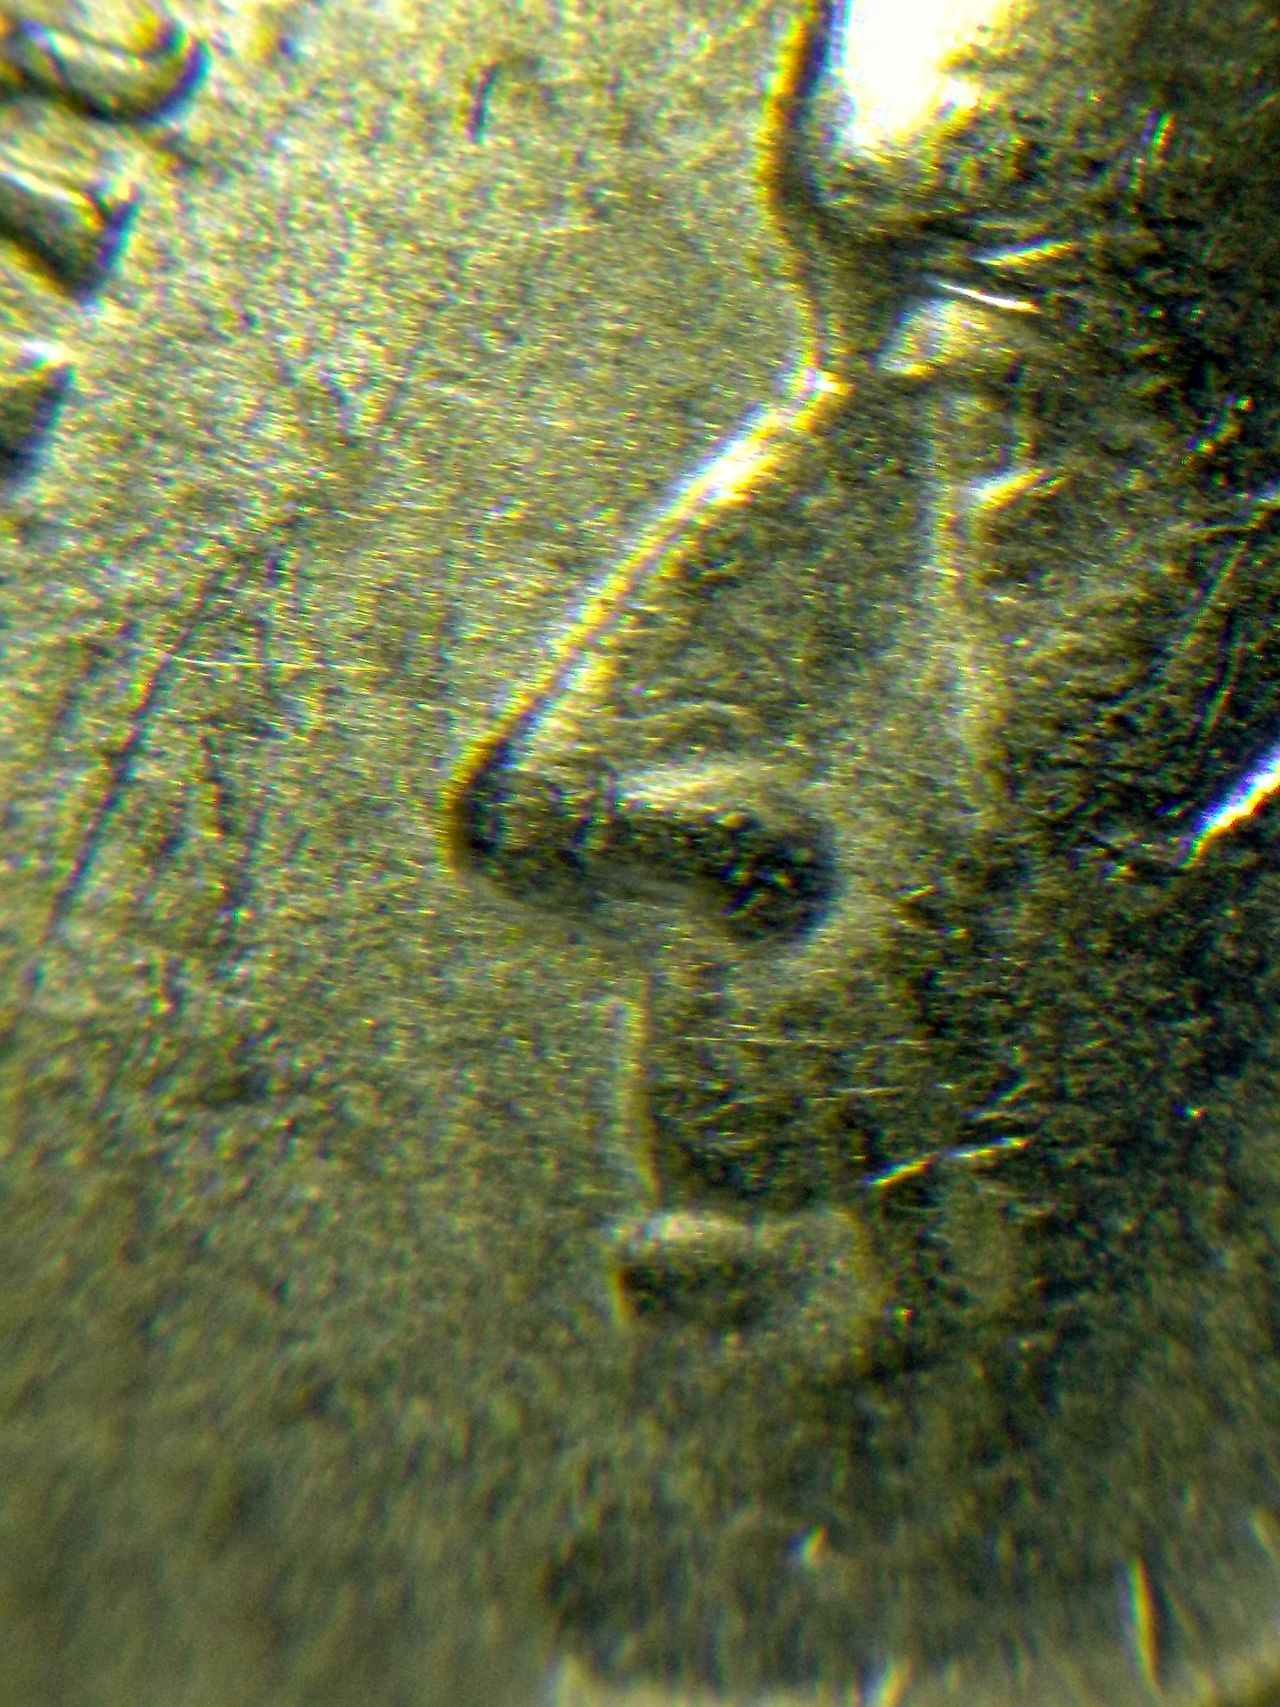 The Portrait of Jefferson President Coin USA America Metal Close-up Microscope EyeEm Best Shots EyeEmNewHere Faces Of The Money Under The Microscope